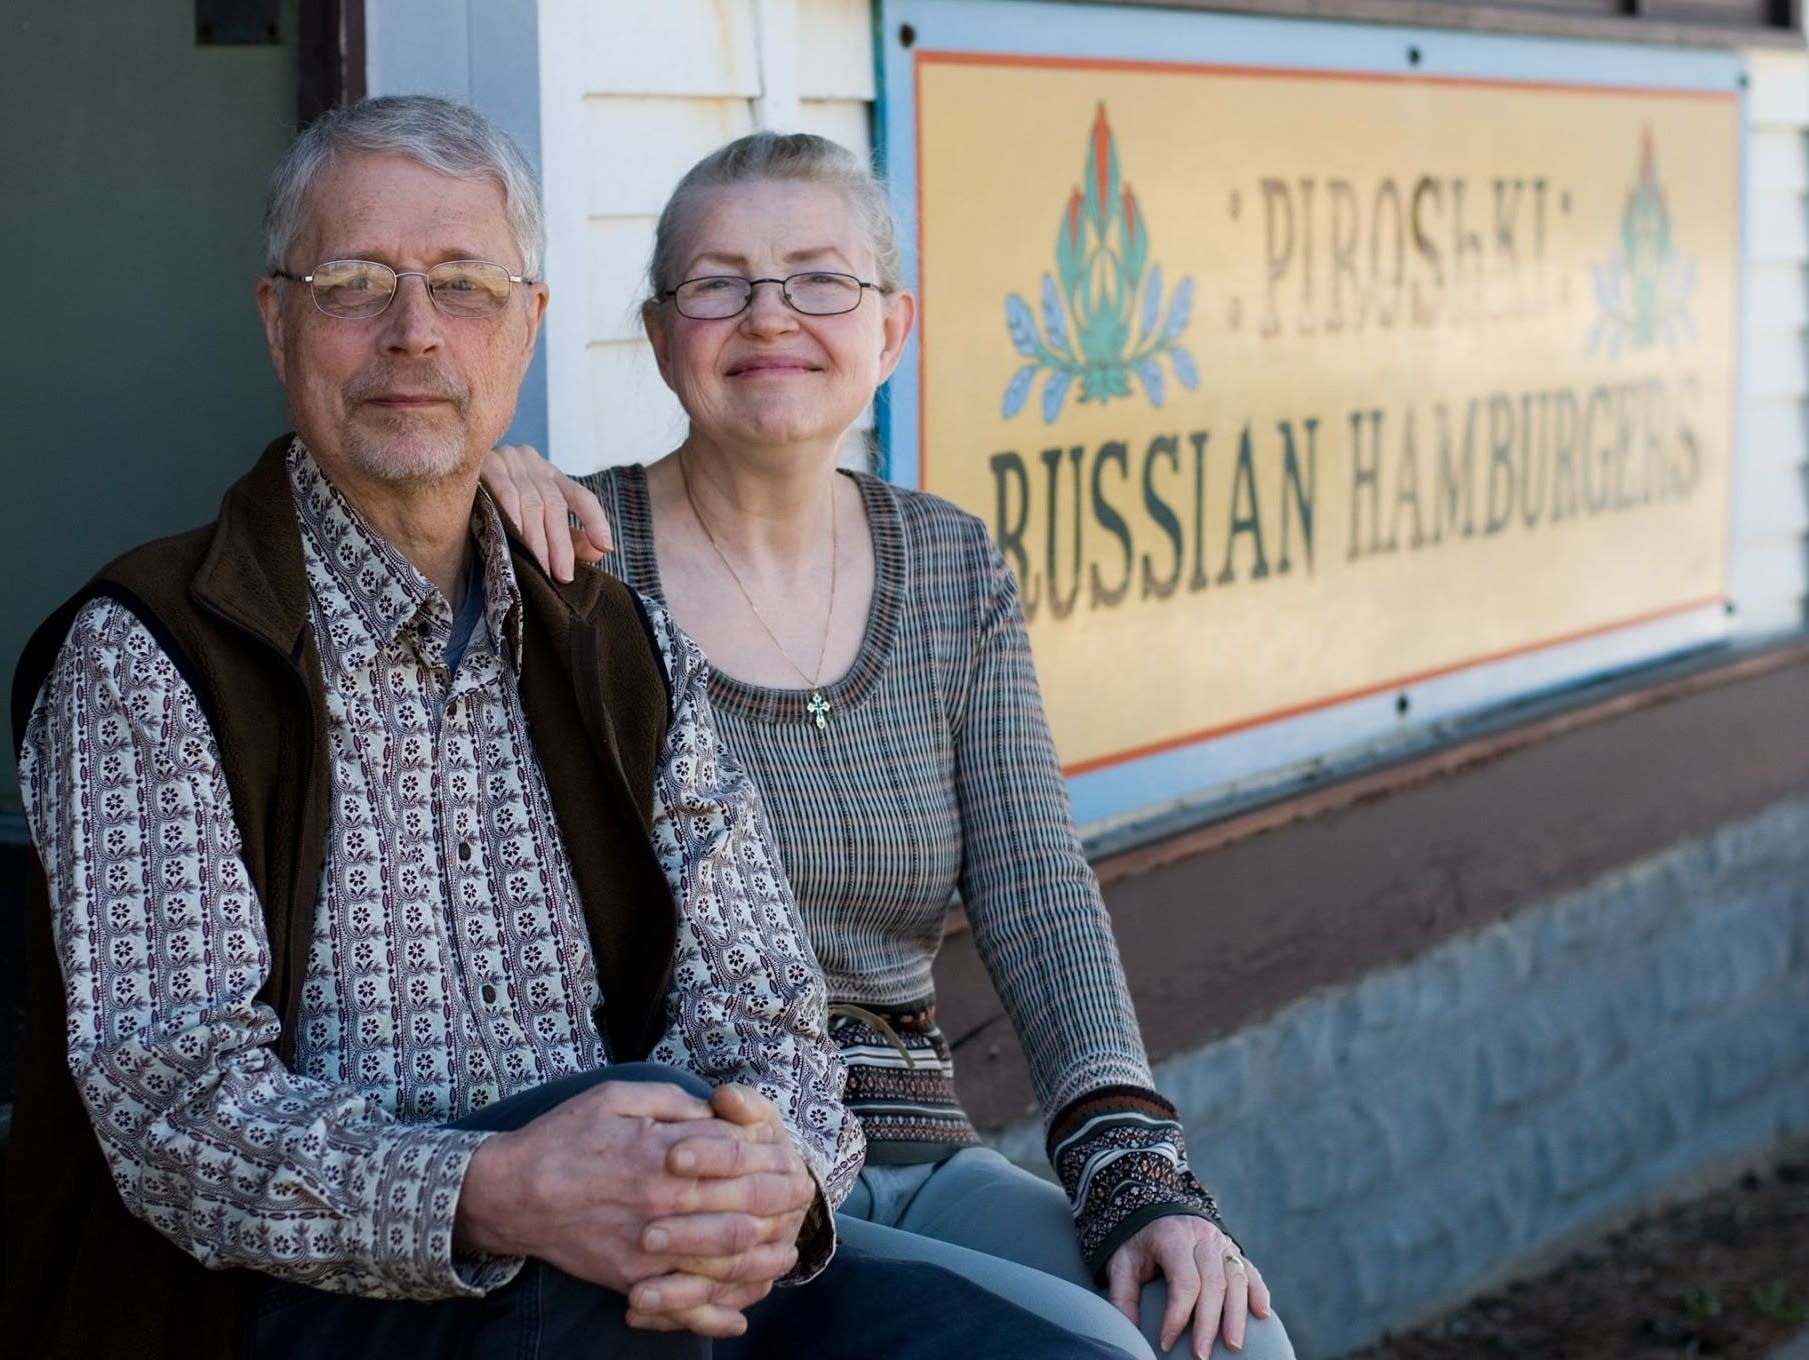 Nikolai and Linda Alenov, the owners of the Russian Tea House in St. Paul